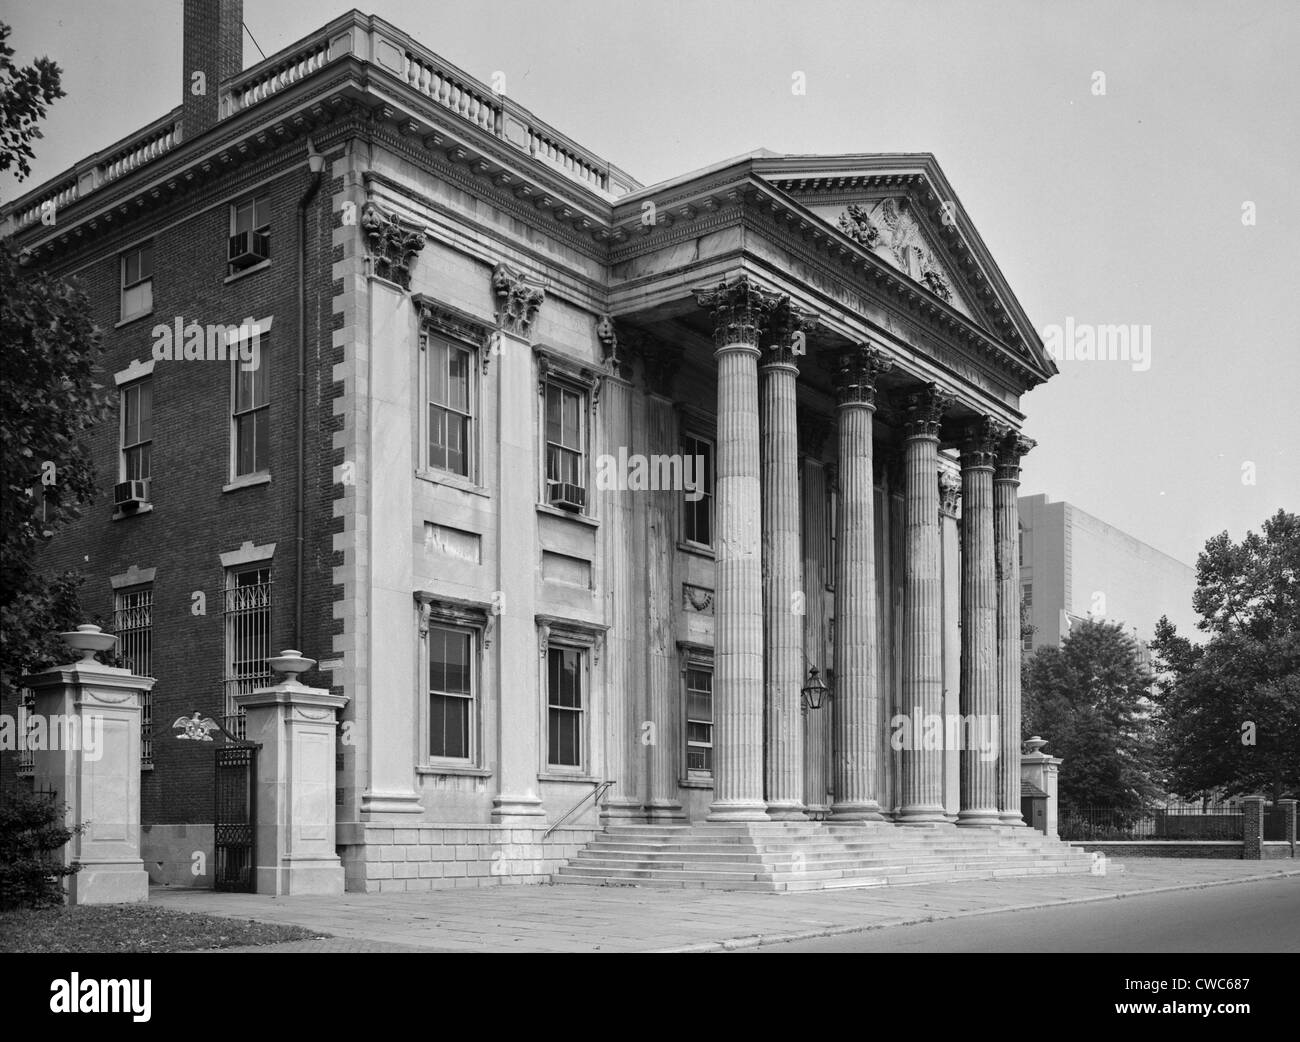 First Bank of the United States, Philadelphia, Pennsylvania - Stock Image